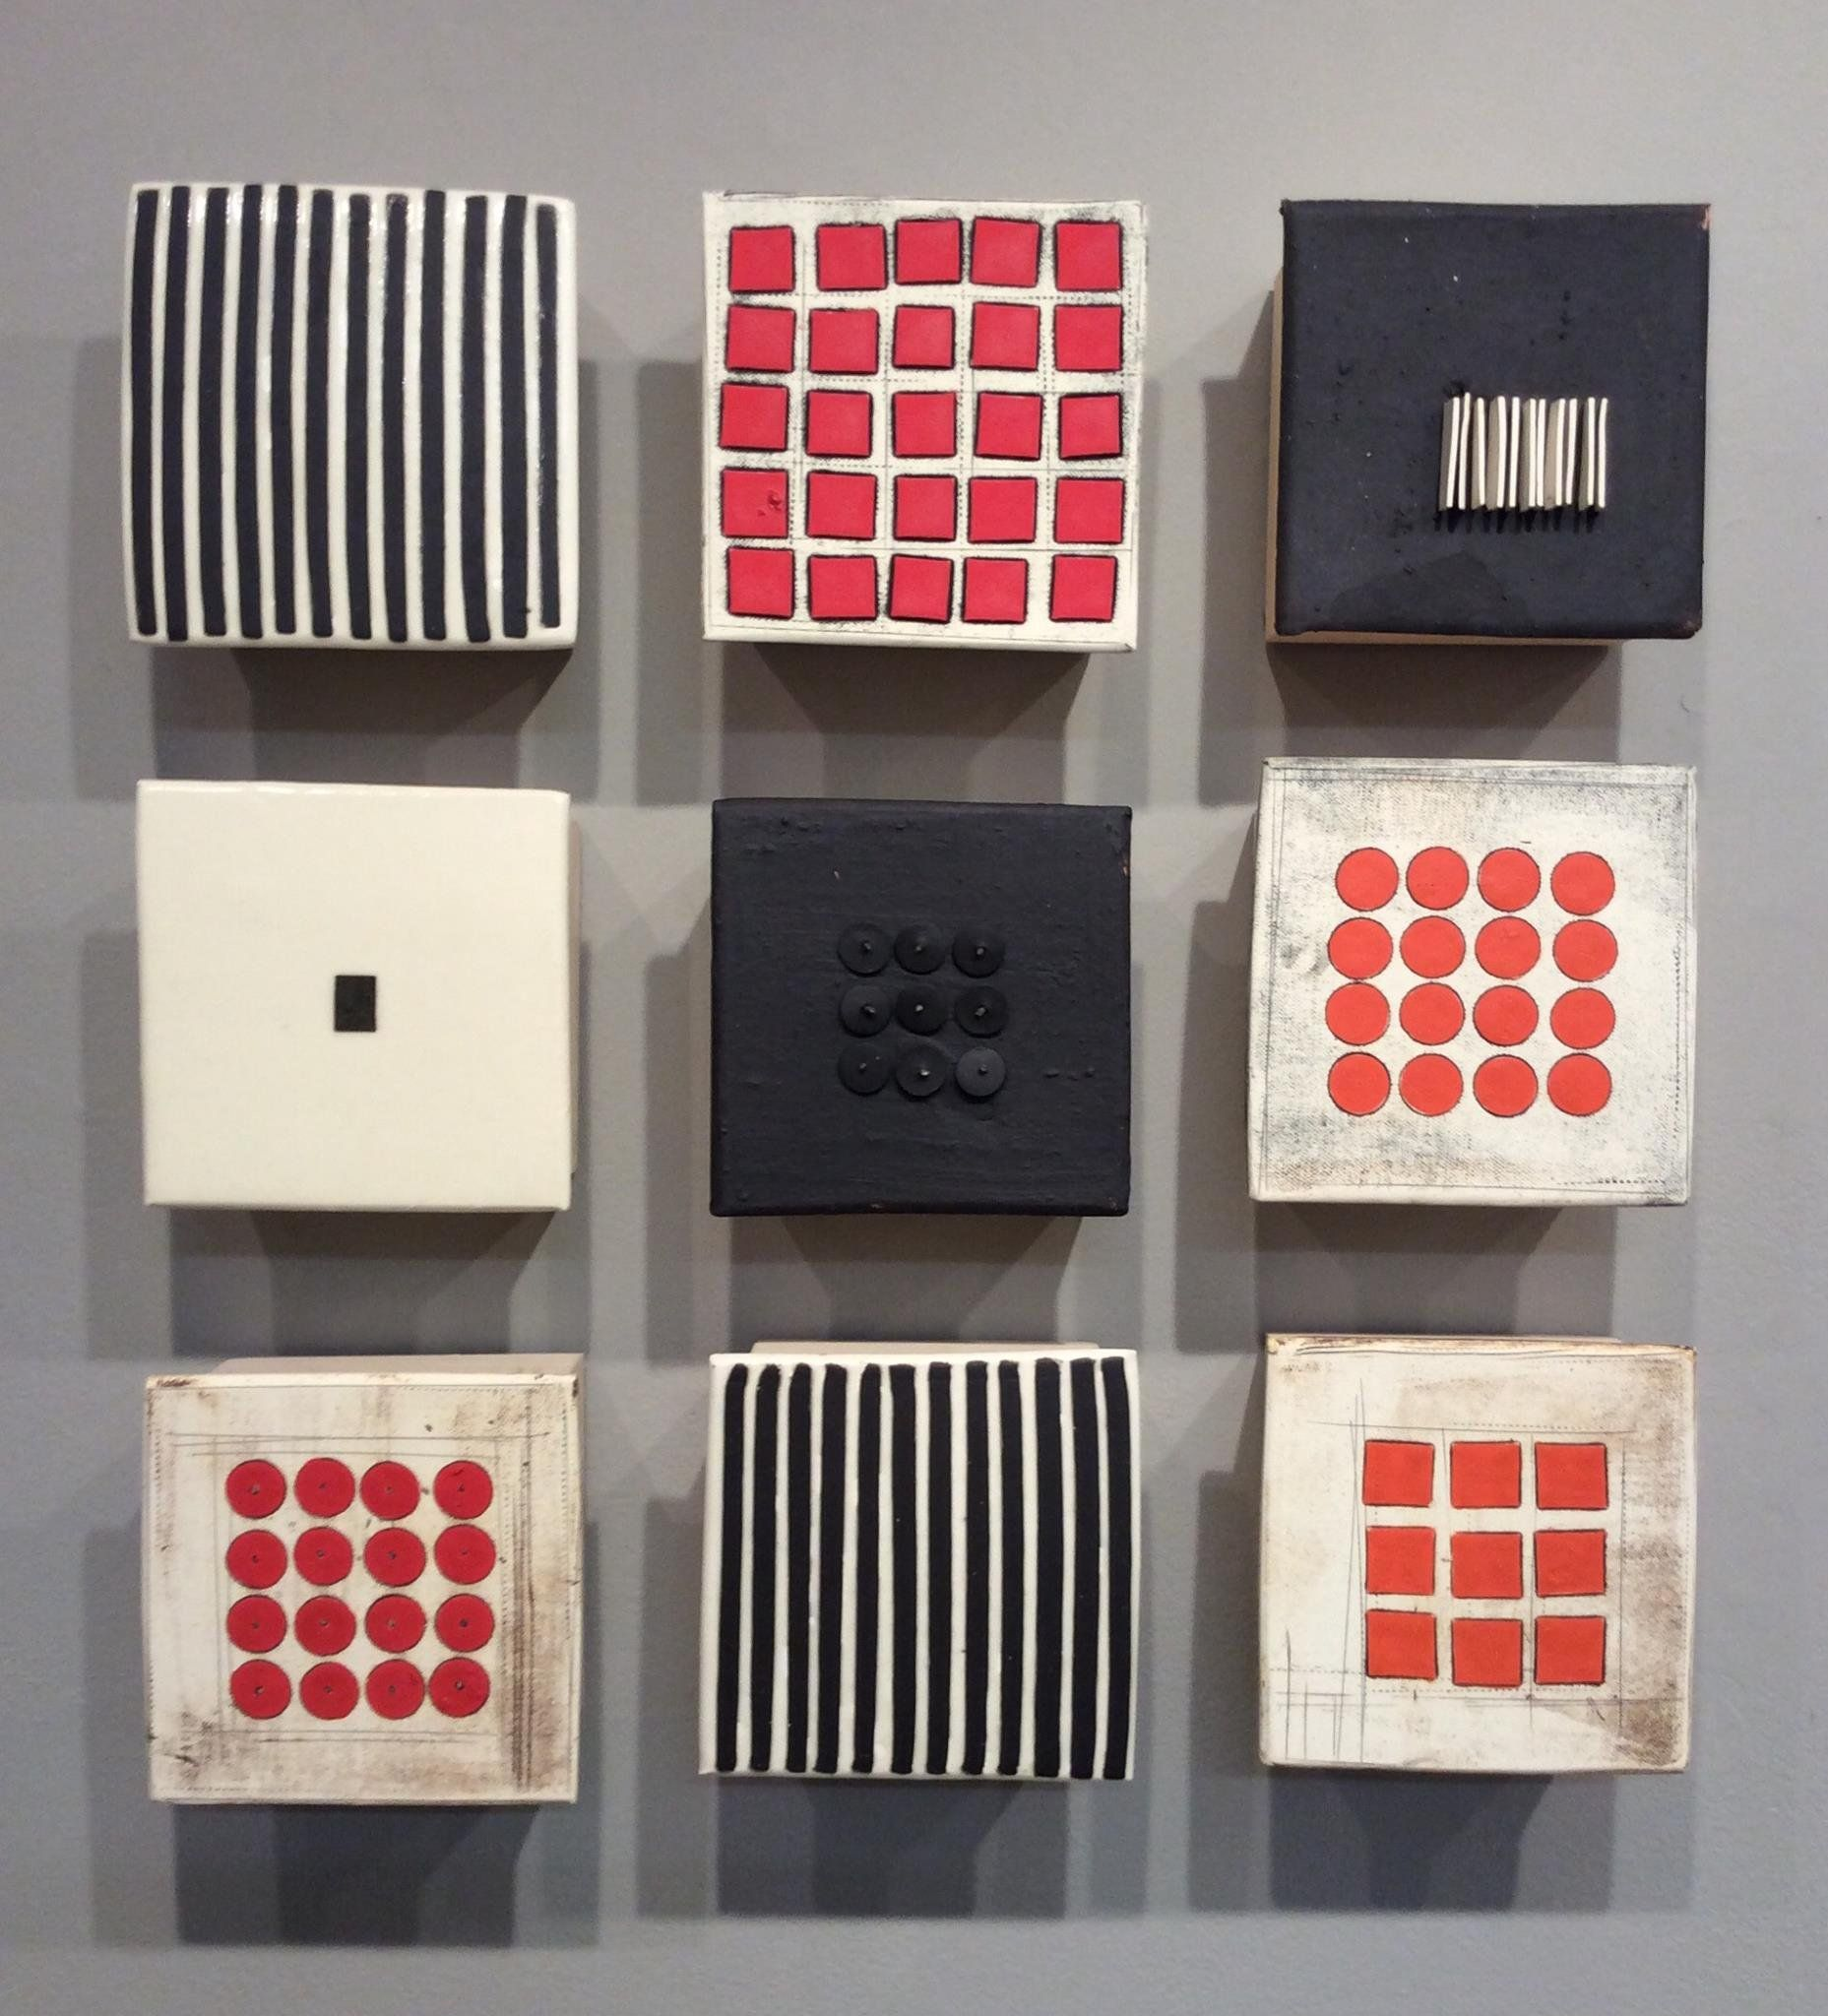 Black and white and red nine by lori katz ceramic wall sculpture